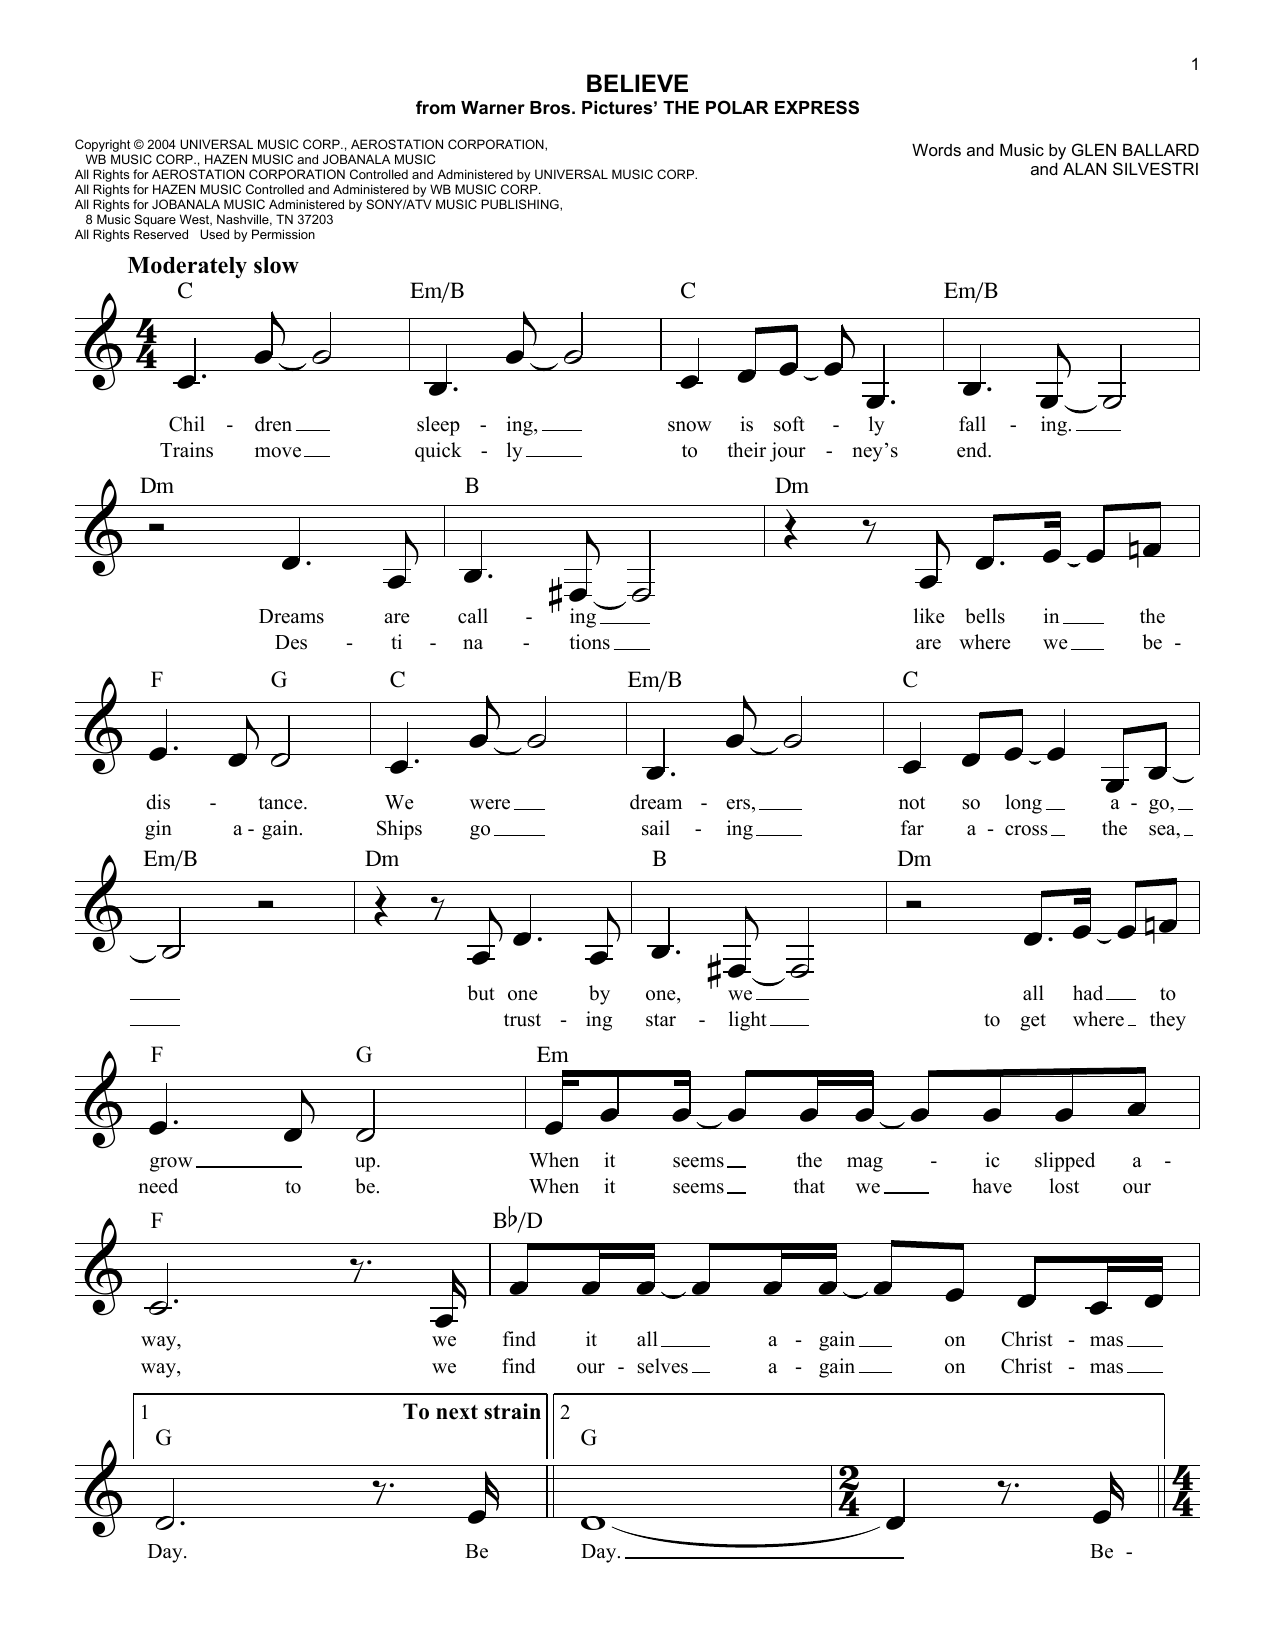 Alan Silvestri Believe sheet music notes and chords. Download Printable PDF.